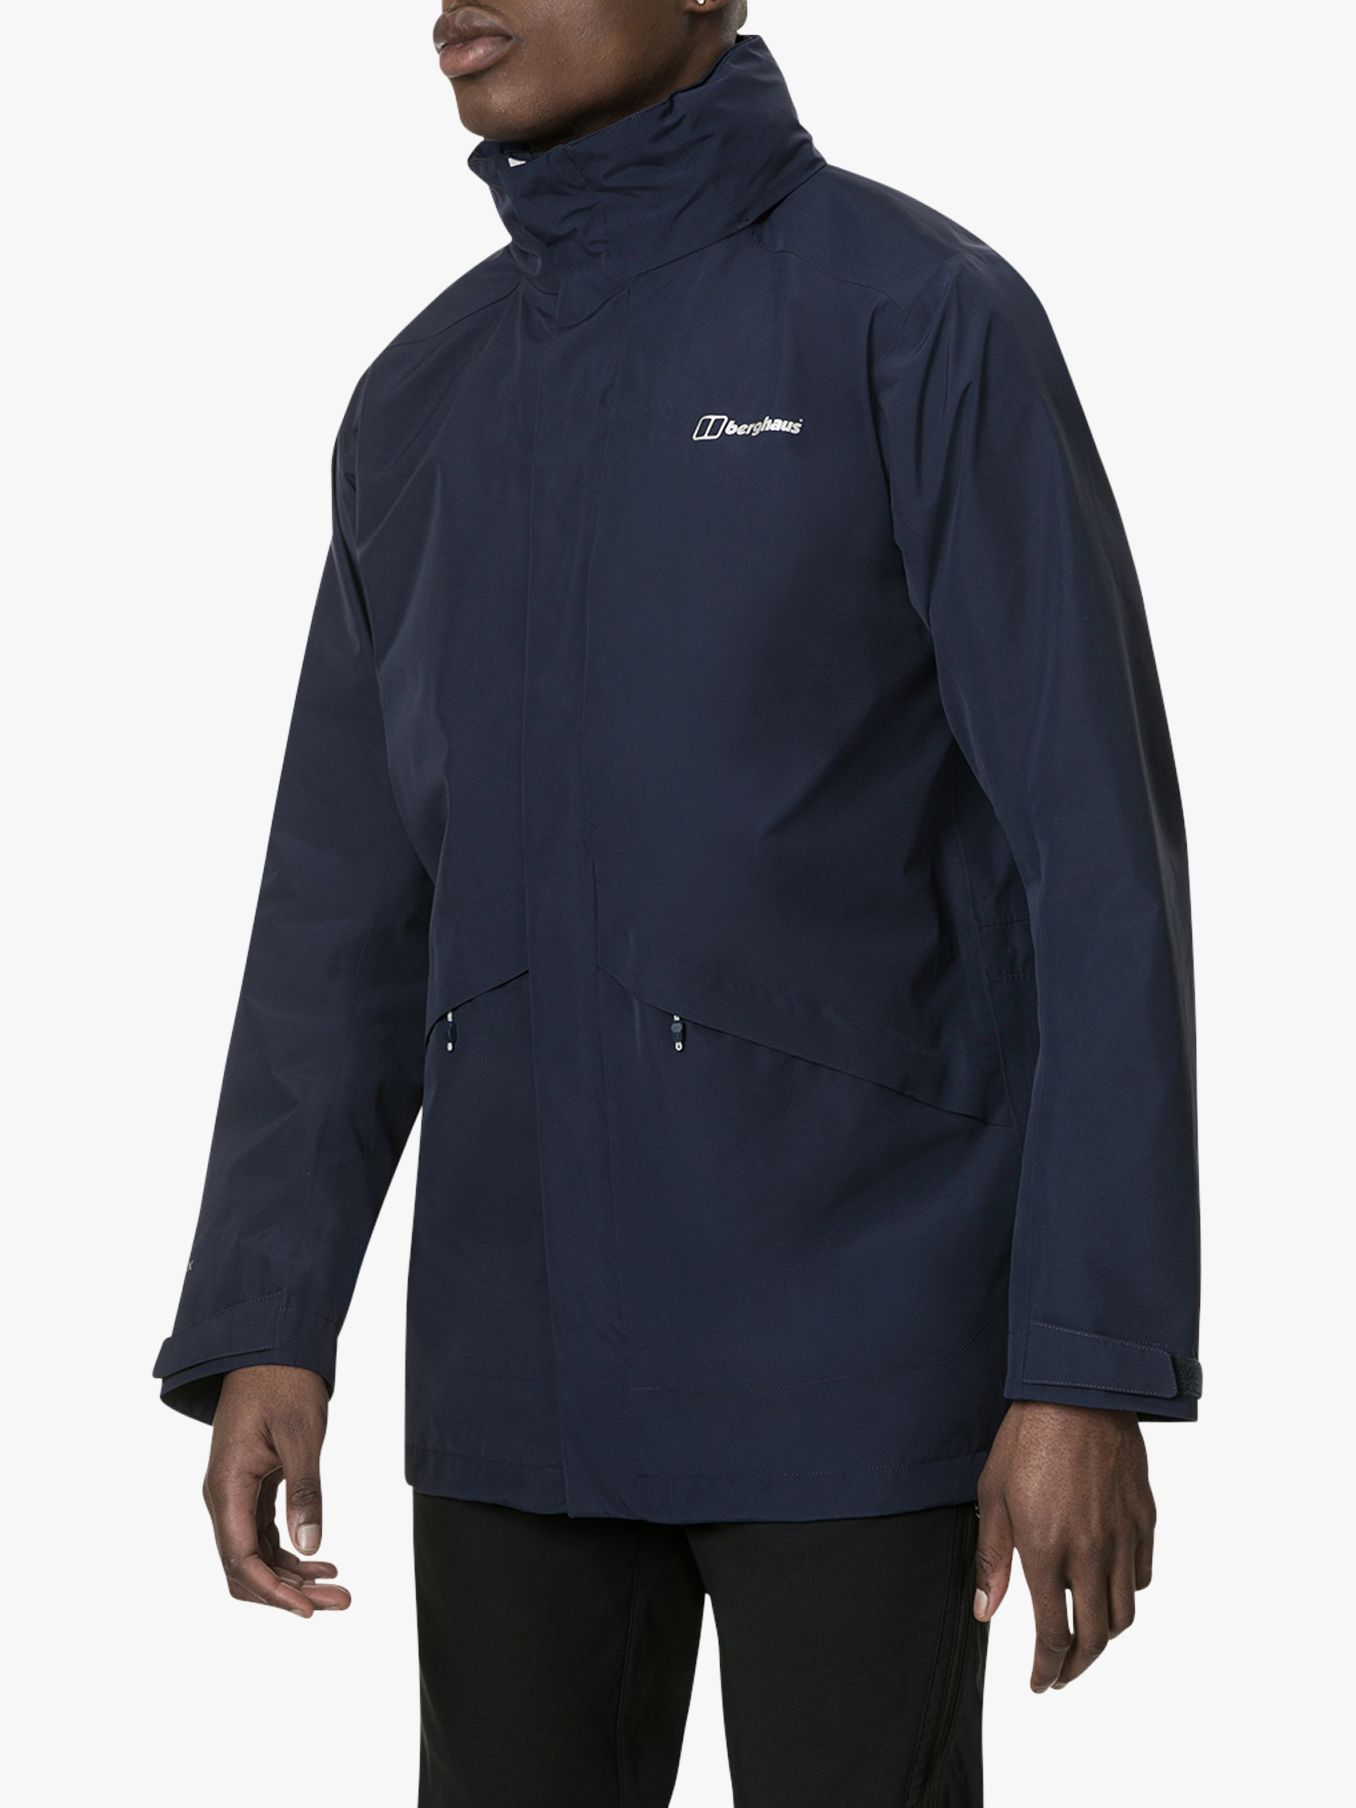 Berghaus Berghaus Highland Ridge Men's Waterproof Gore-Tex Jacket, Dusk